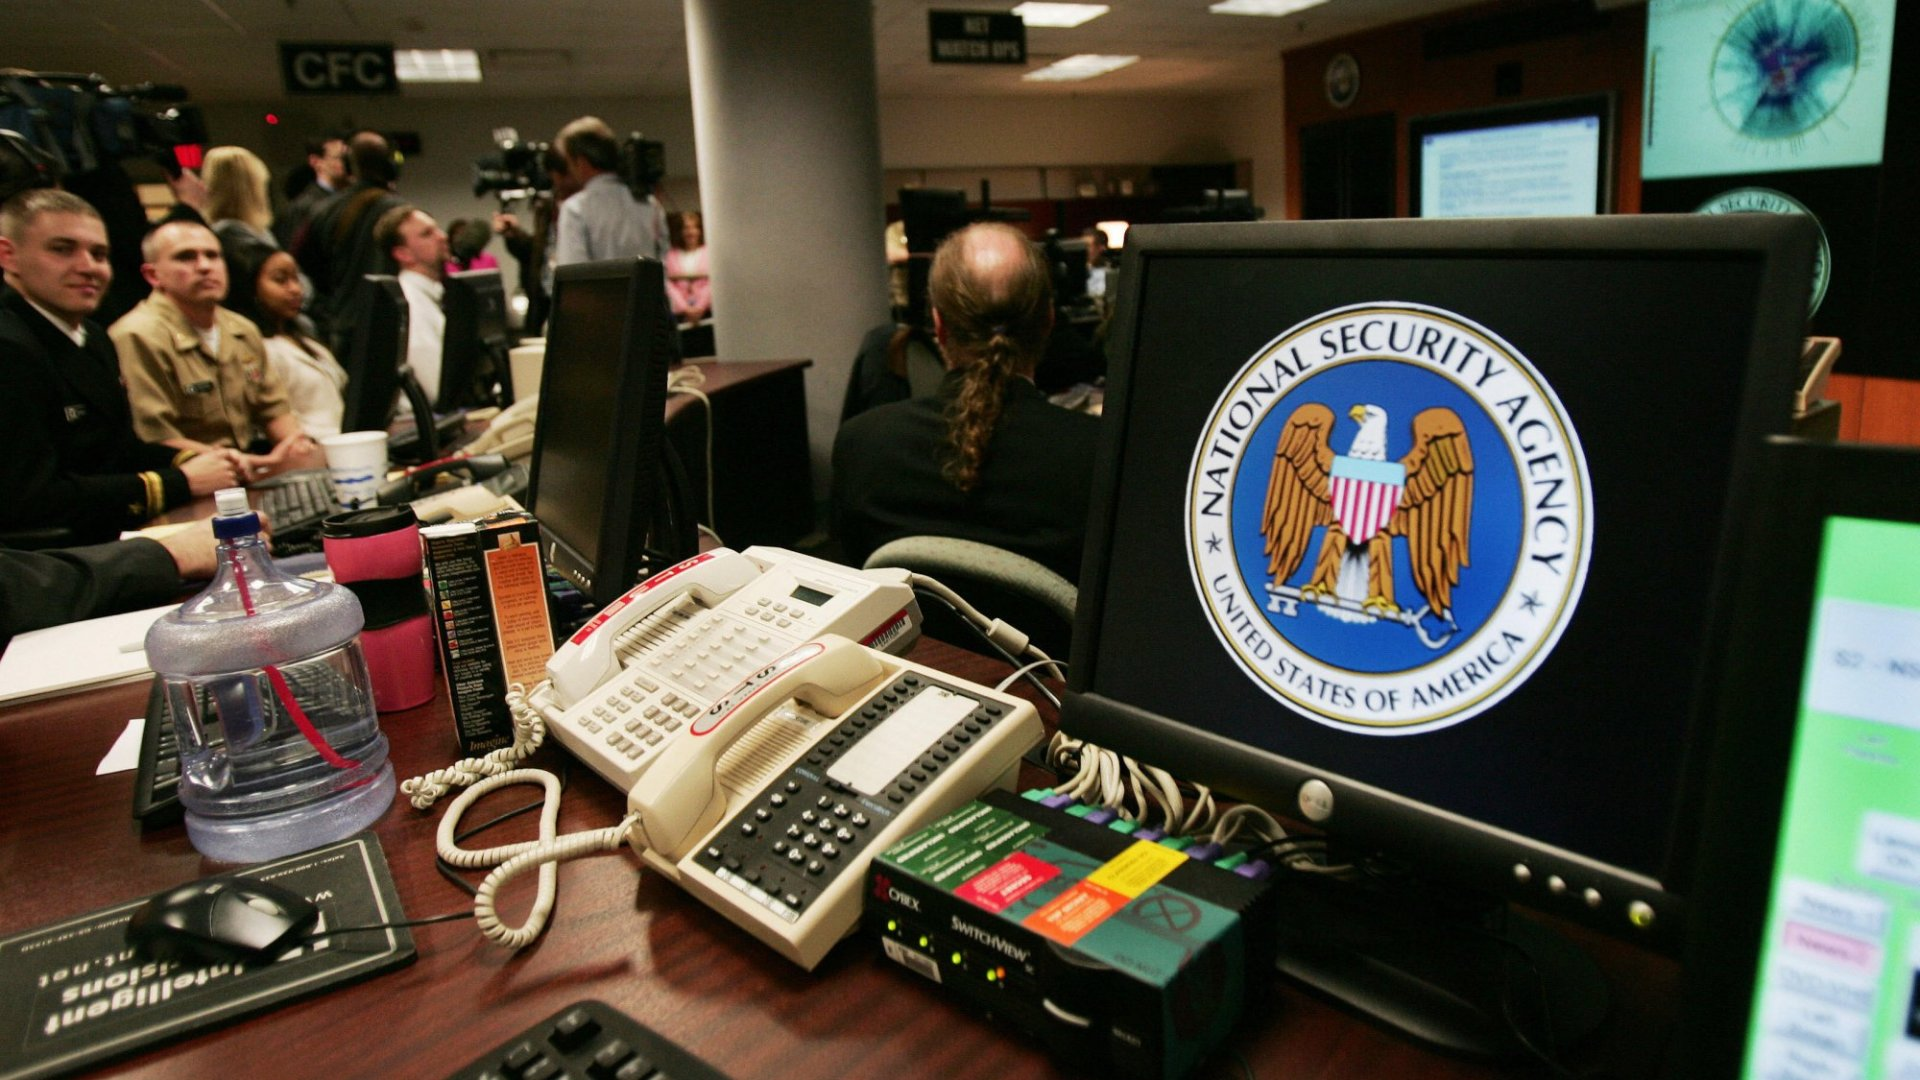 Hackers May Have Stolen the NSA's Most Powerful Top-Secret Cyberweapons